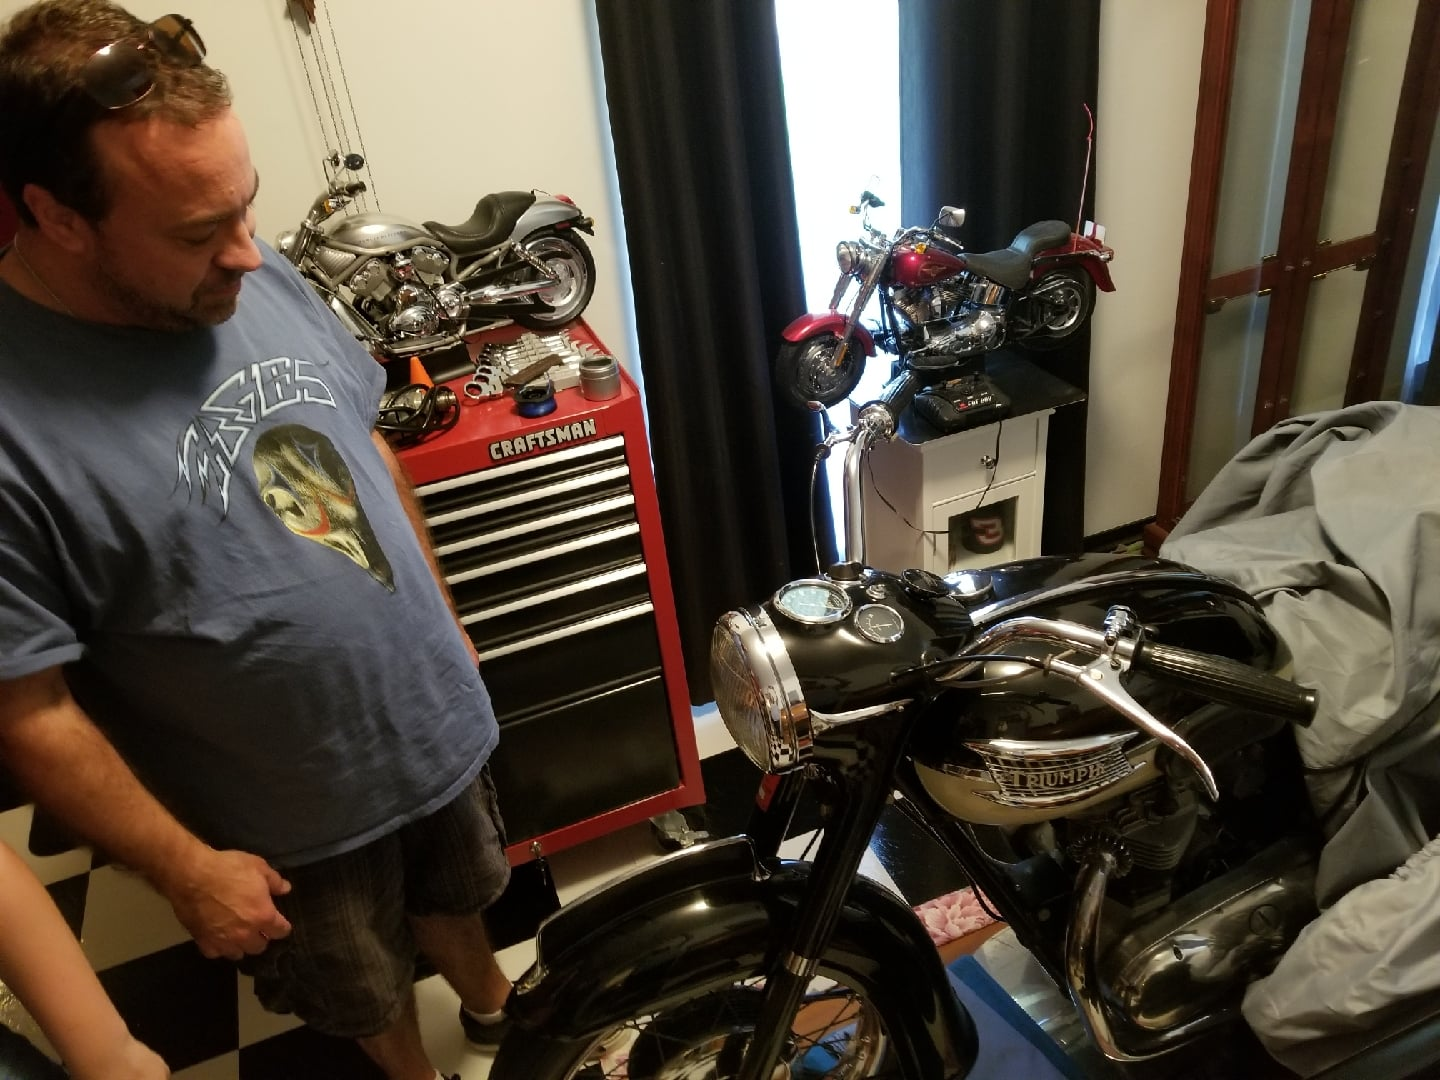 AFTER THE SHOW:Dad's Motorcycle